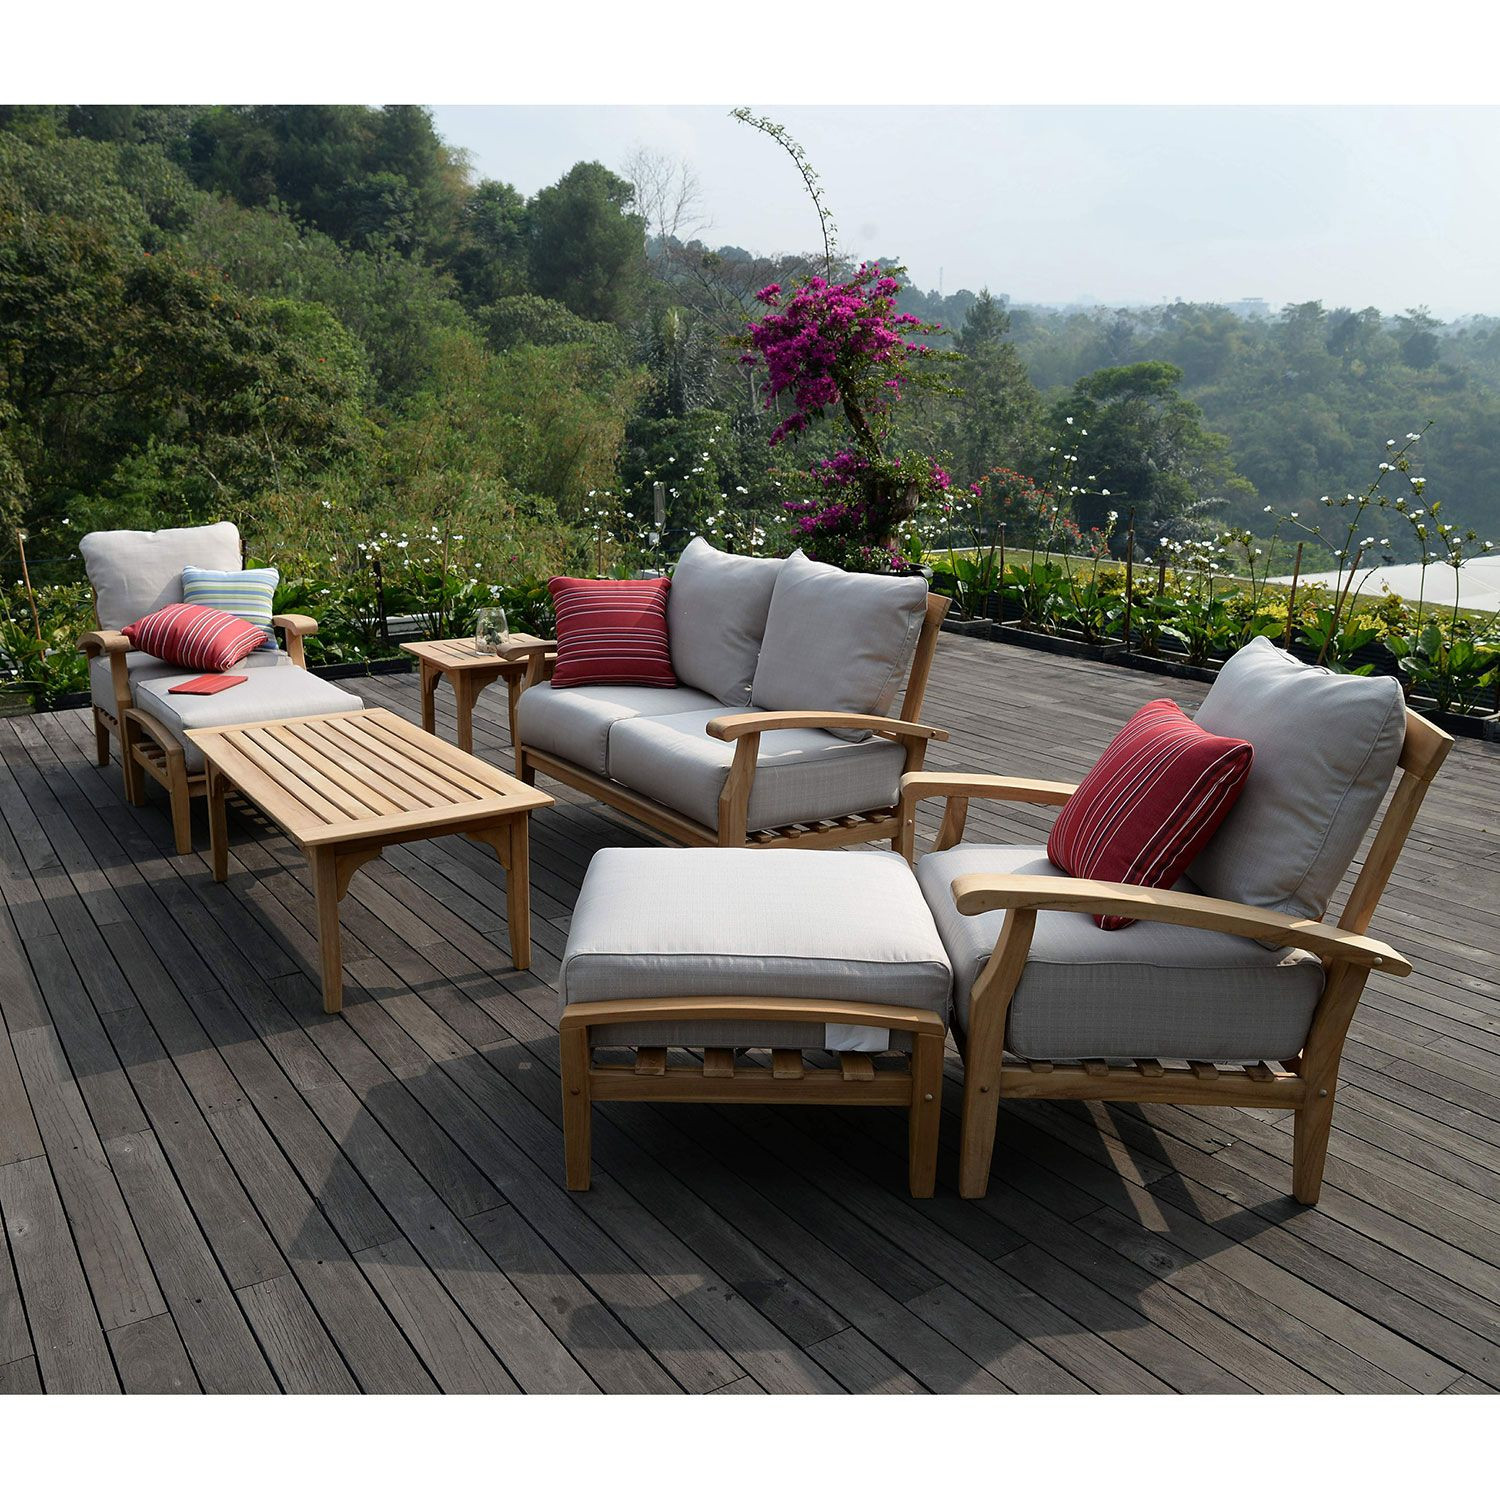 Best ideas about Sams Patio Furniture . Save or Pin Joshua Lane Teak Outdoor 7 Pc Patio Seating Set IT T Now.